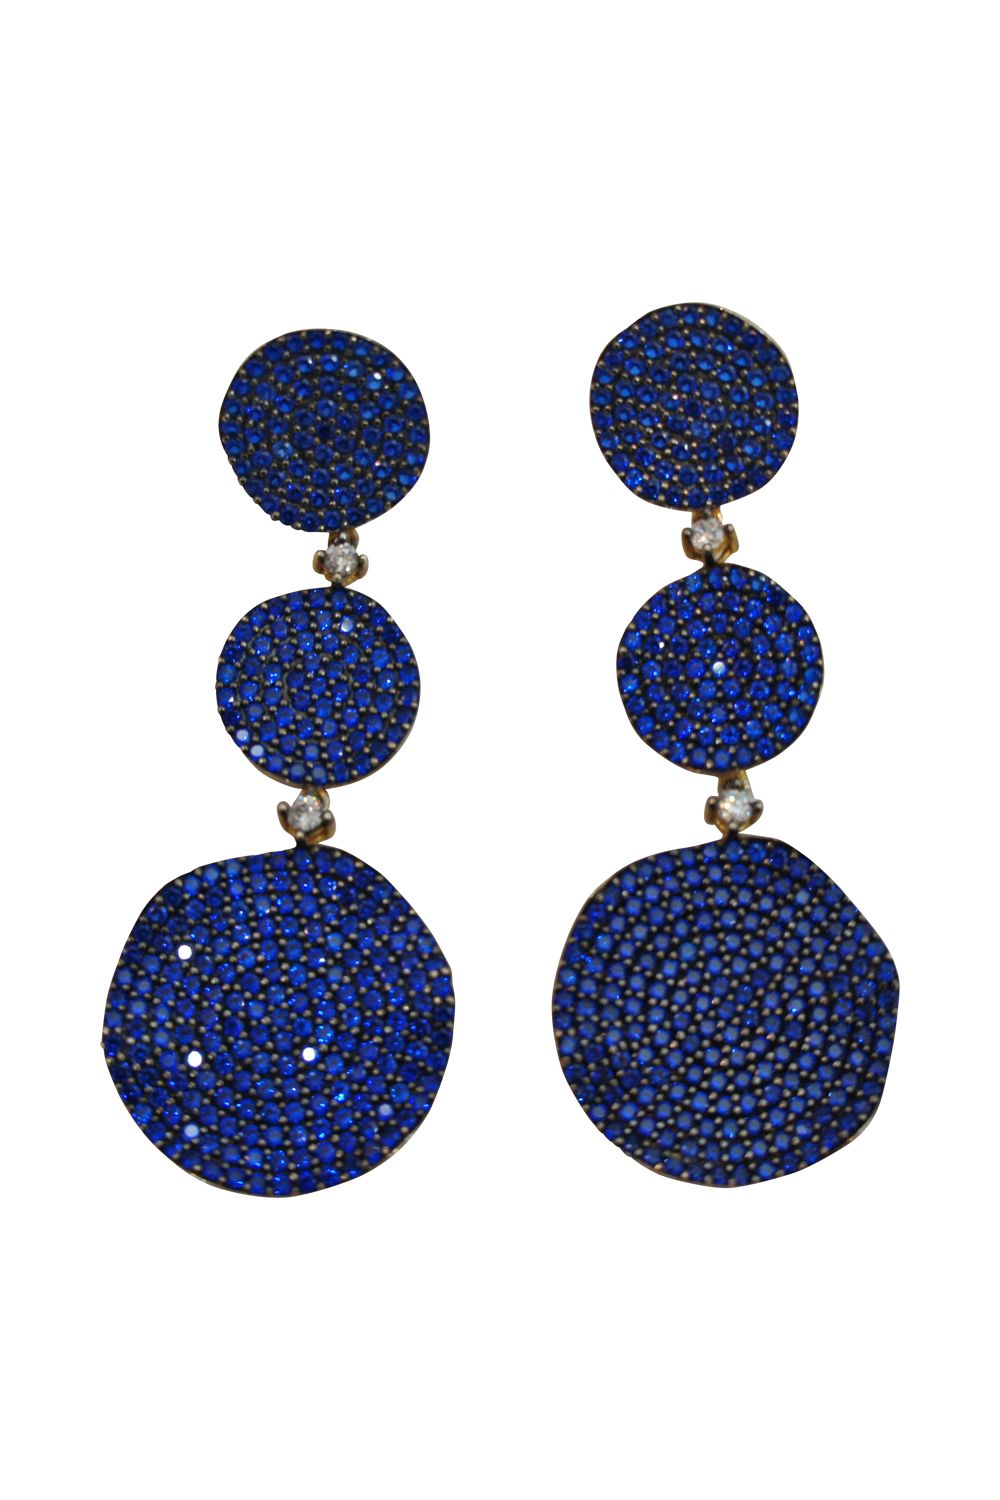 JCM London Sapphire Blue Earrings Preview Images